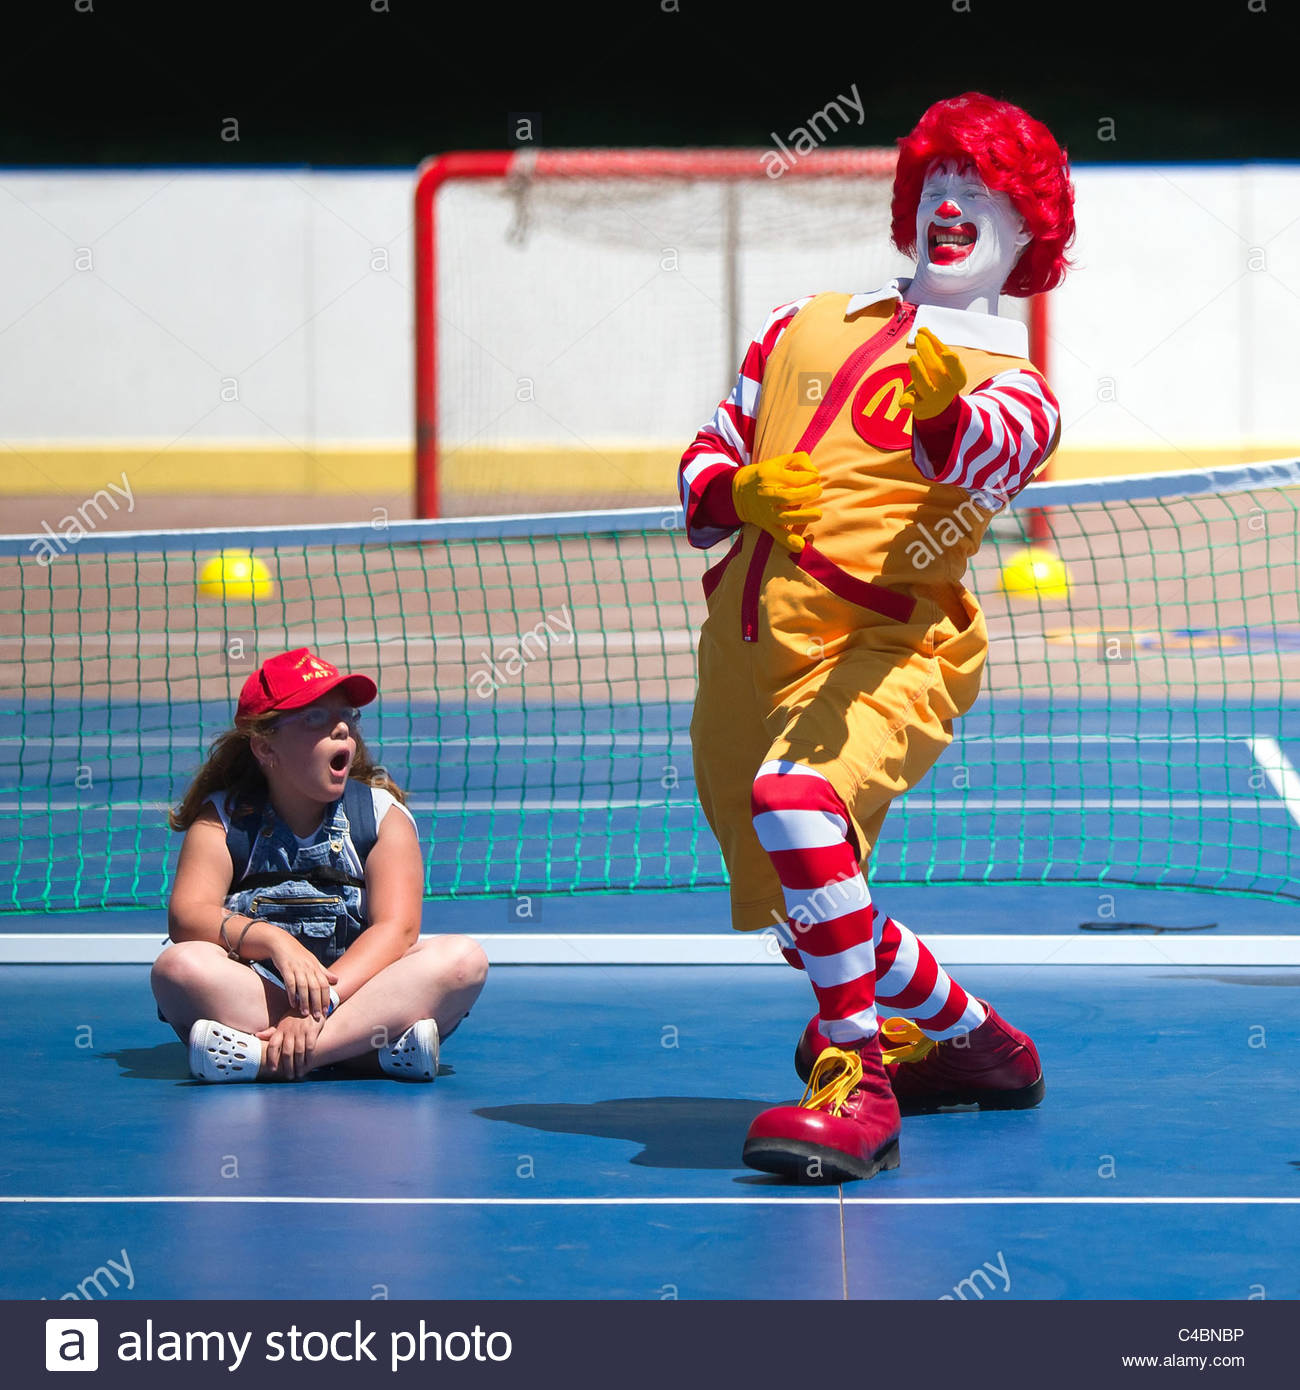 ronald-mcdonald-playing-air-guitar-on-a-